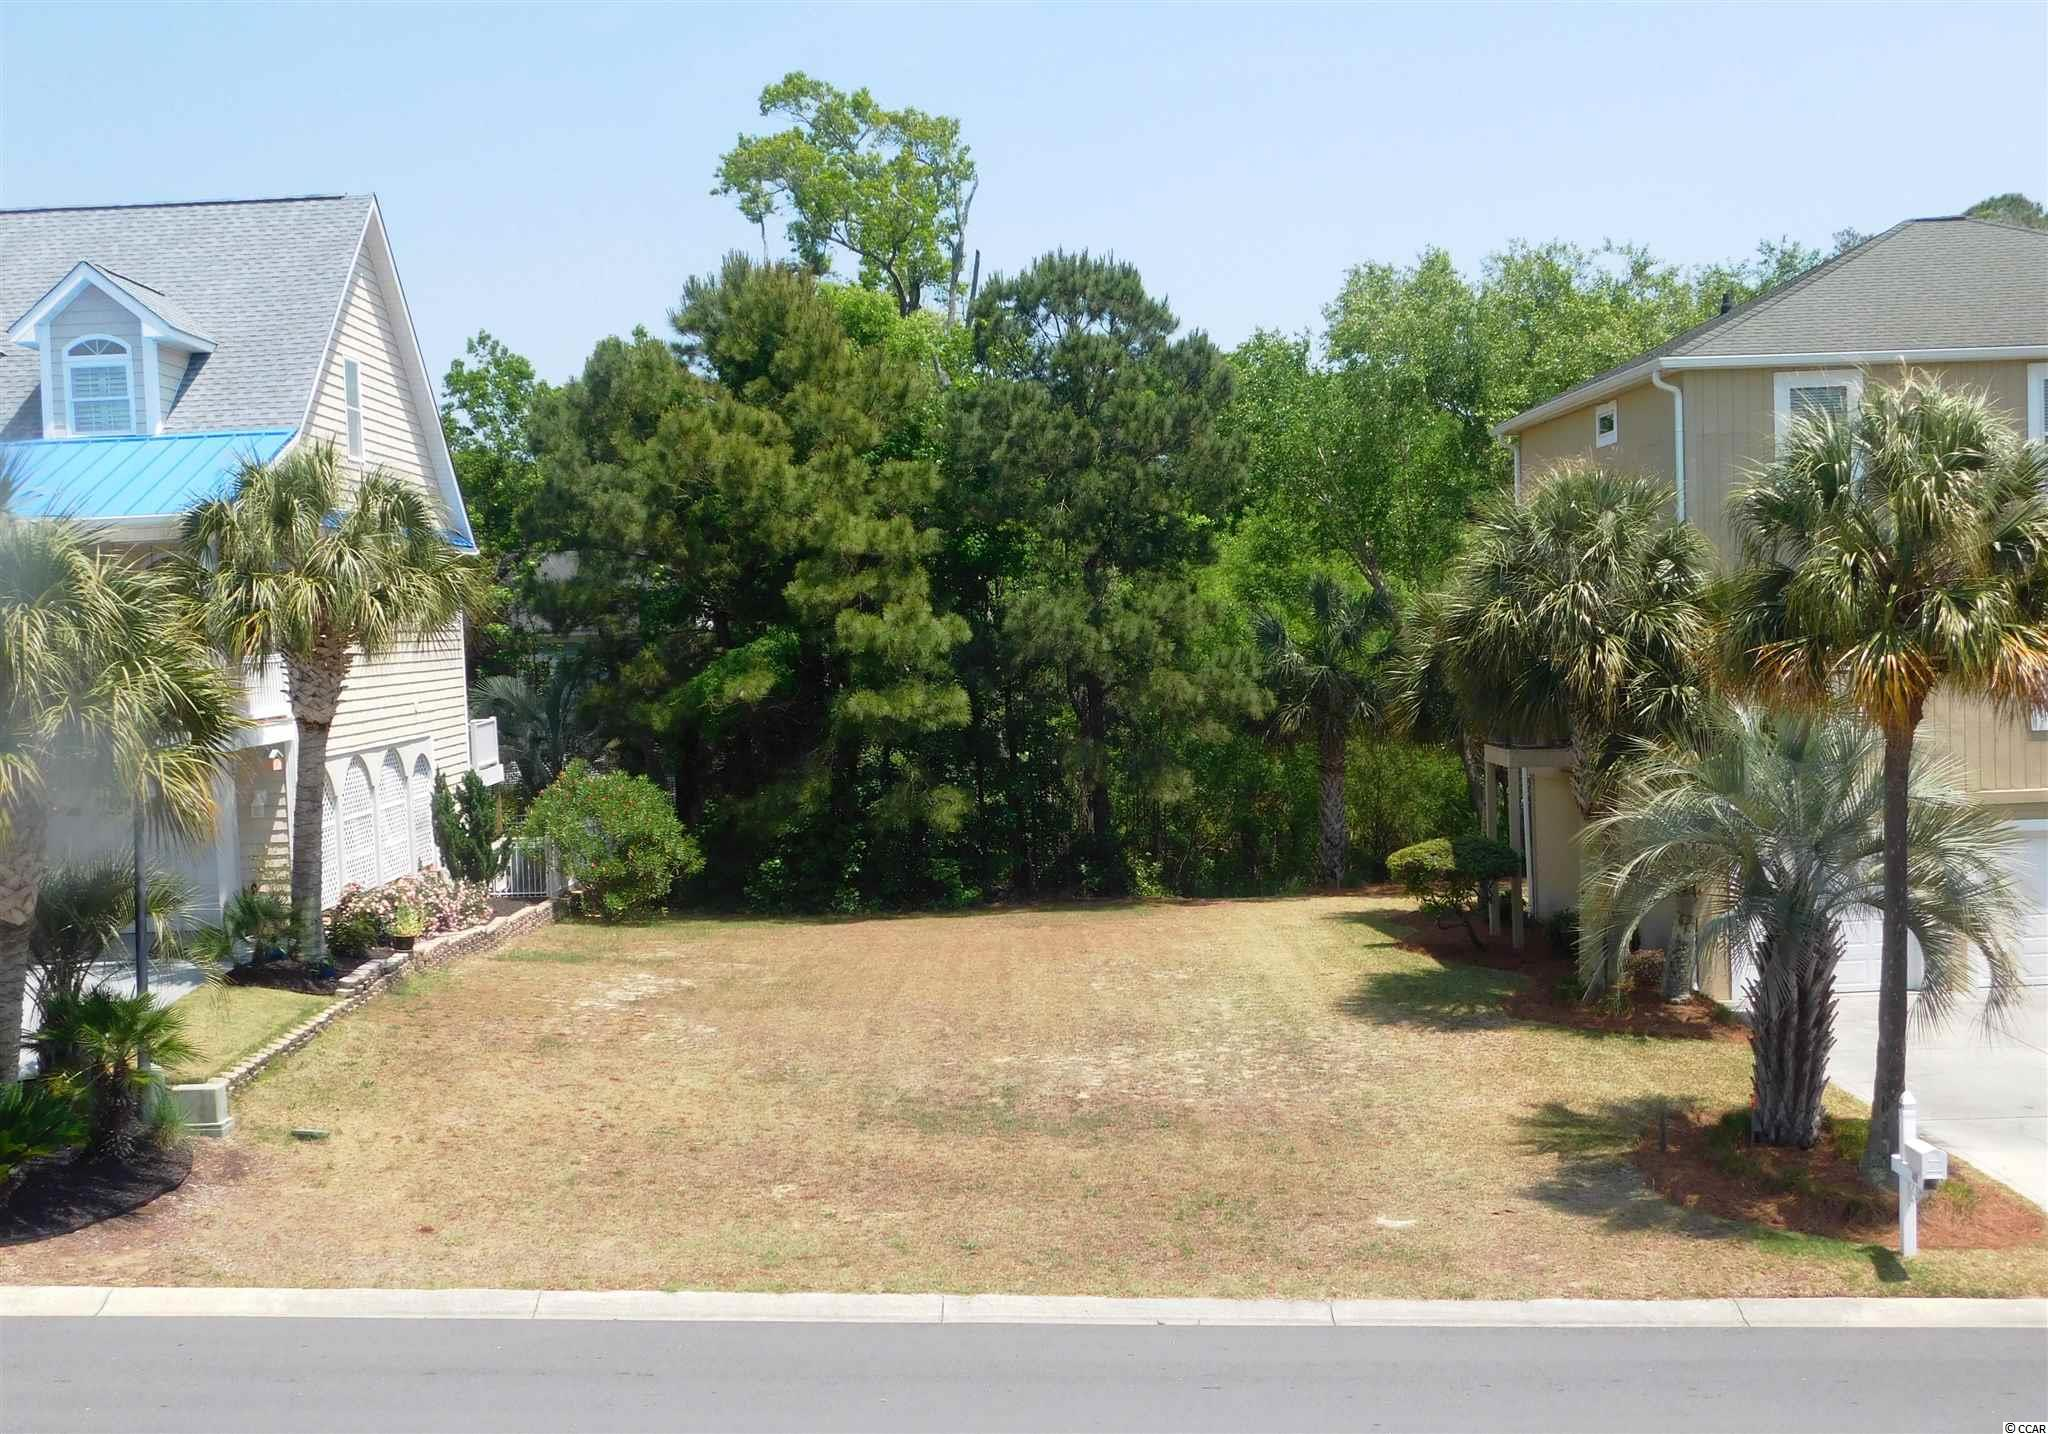 Absolutely beautiful building lot in desirable Palms at 5th Avenue South.  A beautifully maintained community on ocean side of Highway 17, which affords owner walking or golf cart riding to the ocean, shops, post office, restaurants, dancing, etc. in the heart of North Myrtle Beach.  HOA fees are low-low and lot is one of closest in the community to the ocean.  See it- you'll want it for your perfect beach cottage- close to the shore.   No set time to build.  Buy now, build later. Listing agents are also the owners/sellers of the property.